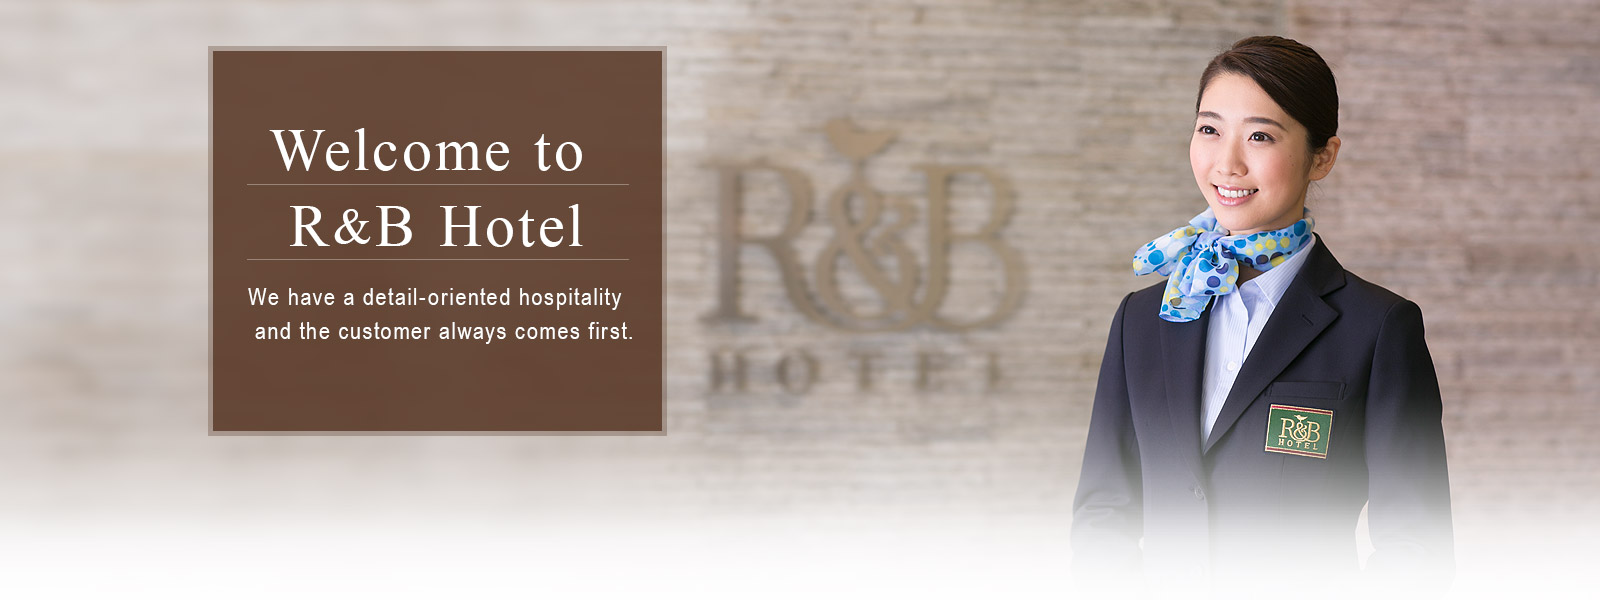 Welcome to R&B Hotel